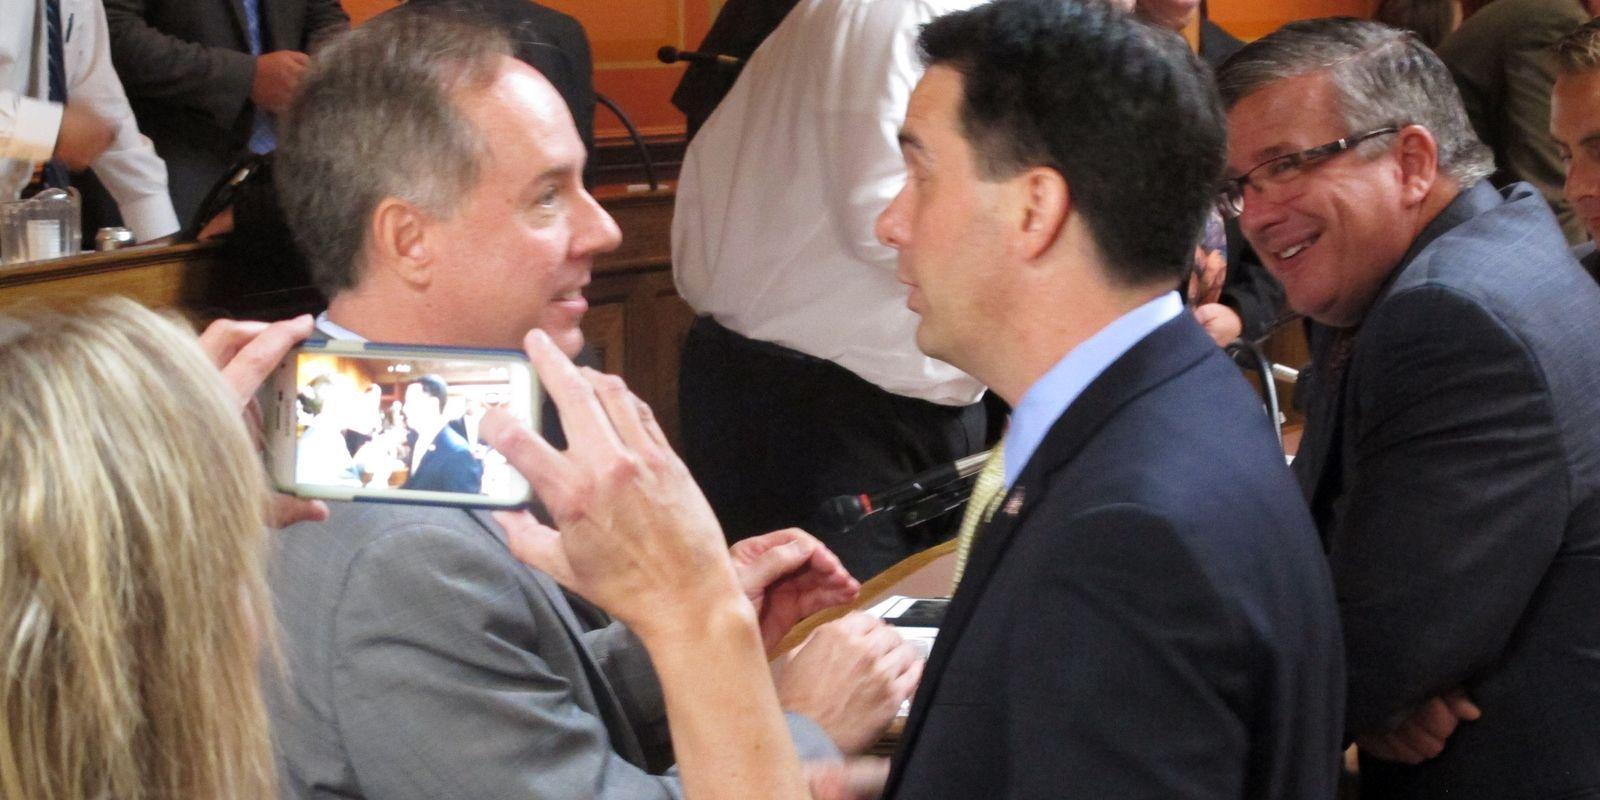 Vos also criticized GOP Gov. Scott Walker, despite their close political relationship. (Associated Press)